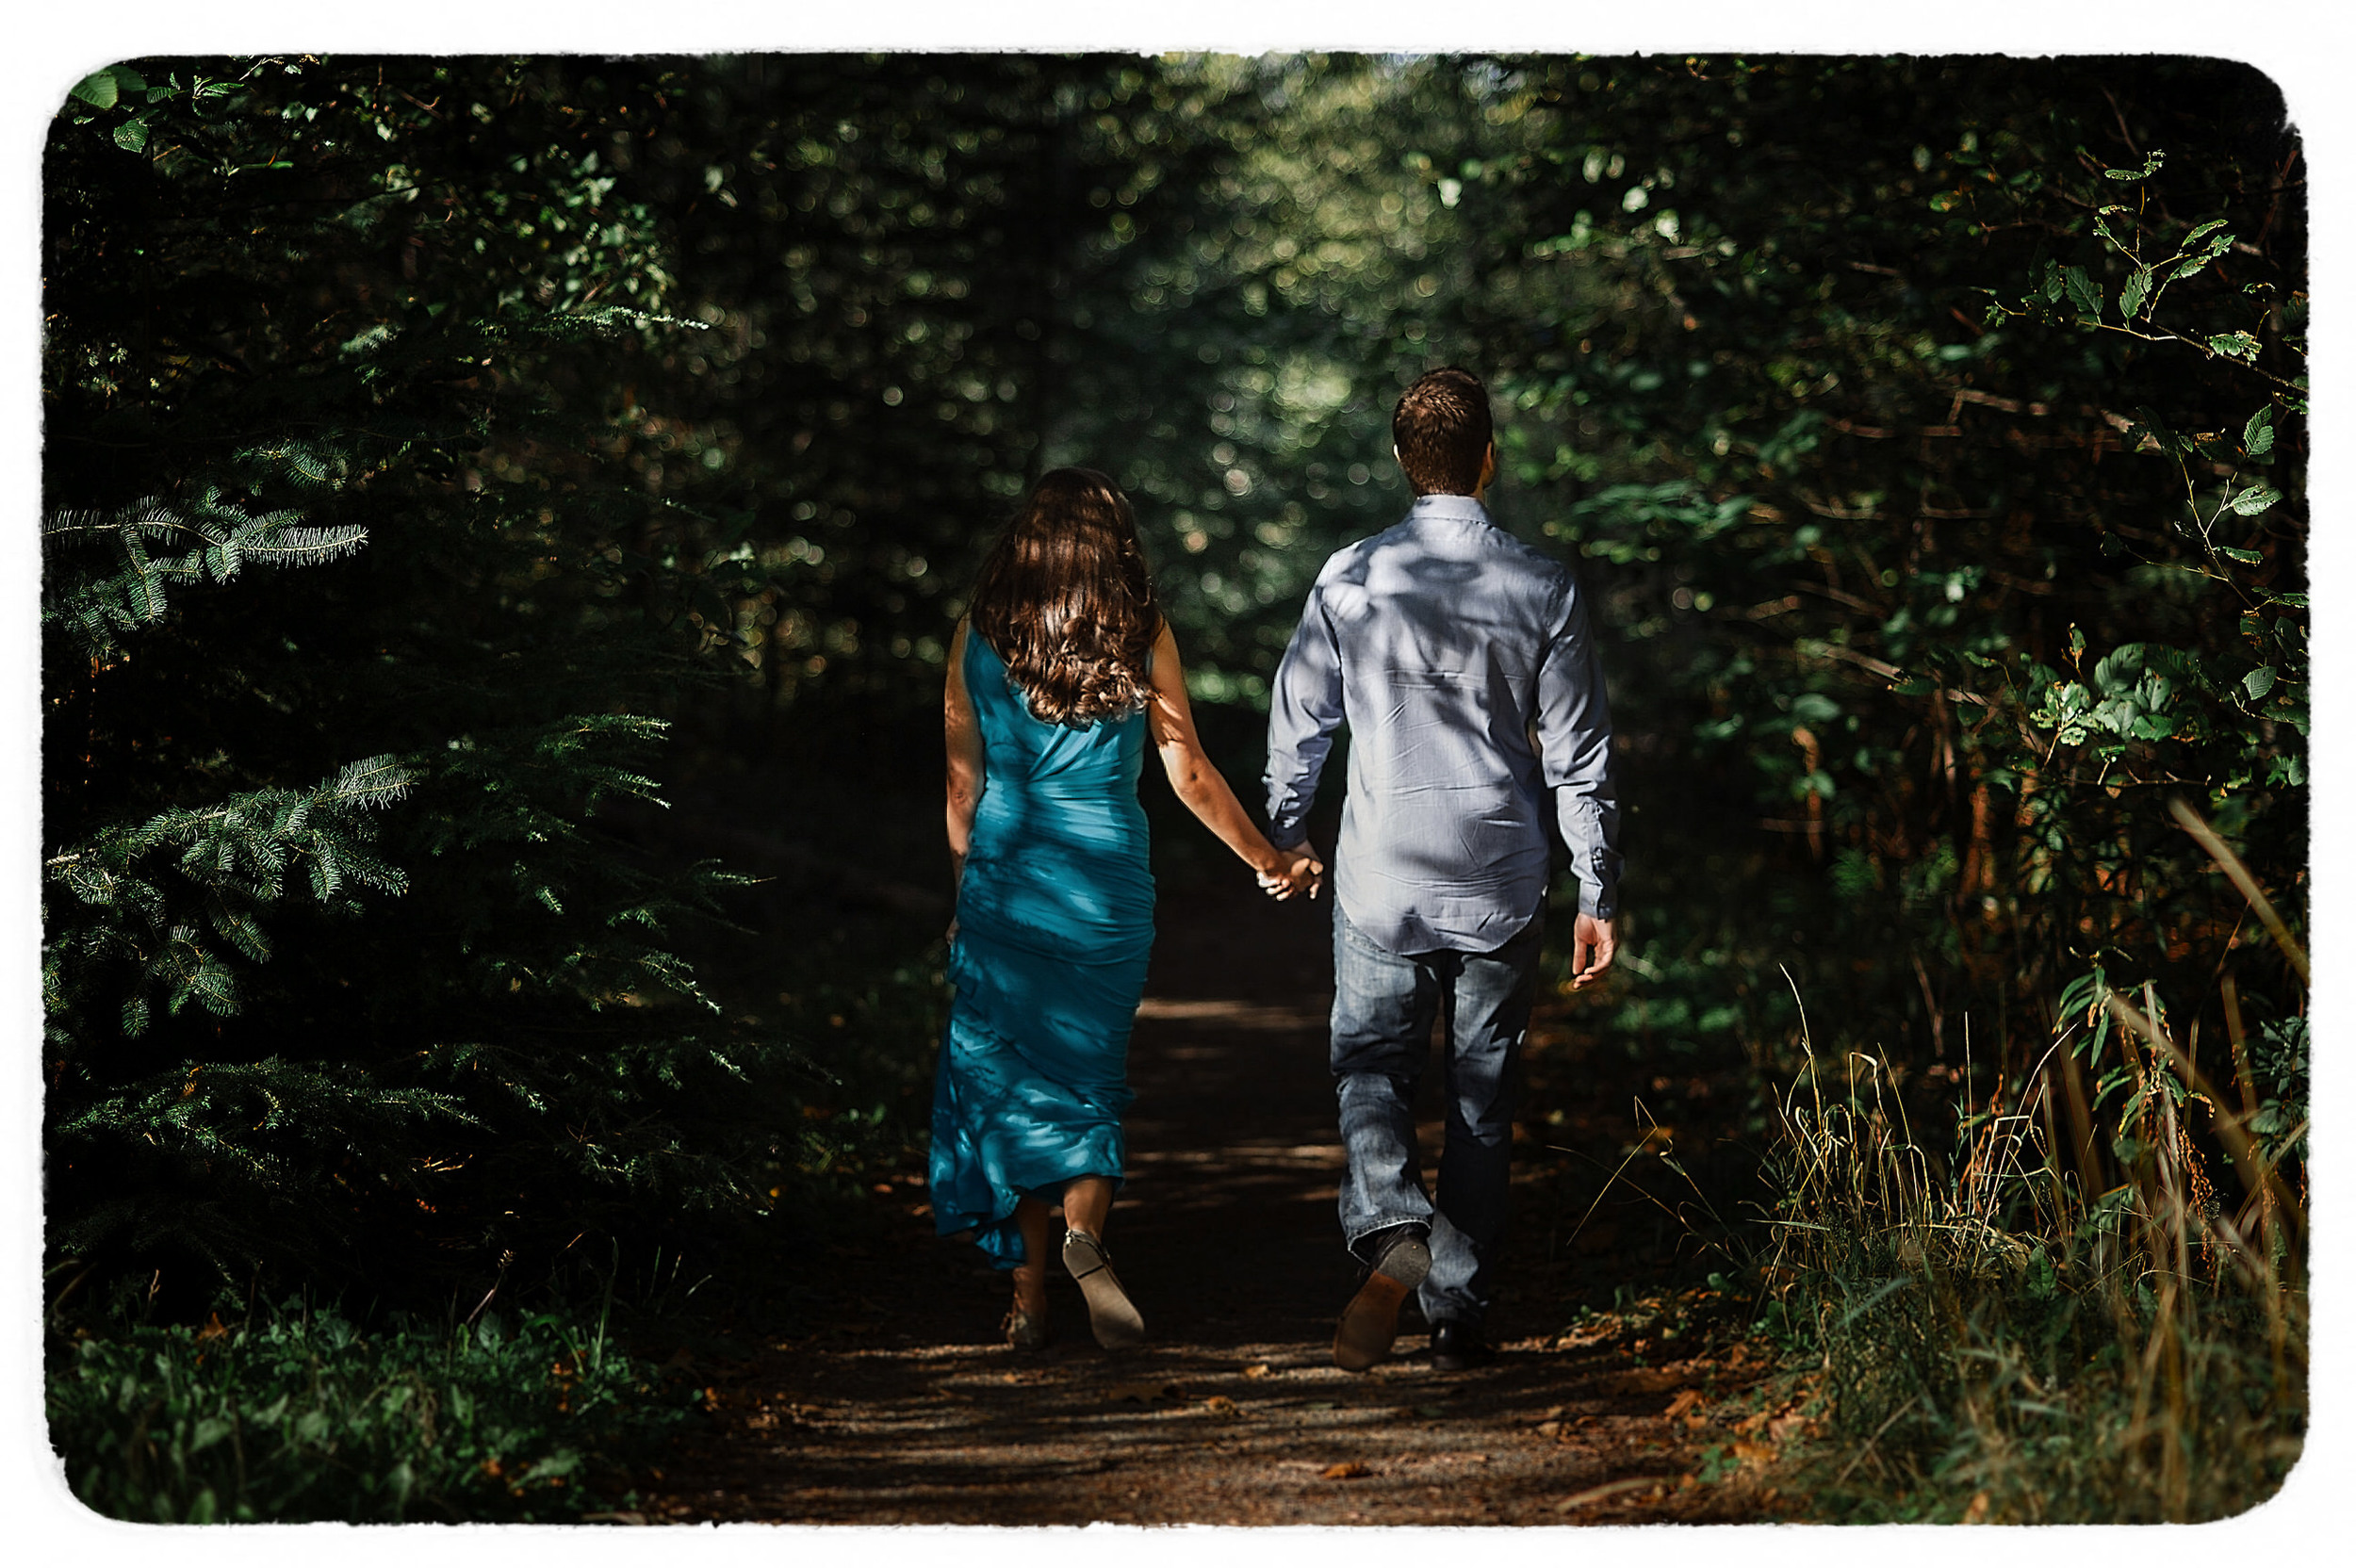 Kelly&Mike-EngagementSession-OriginalCollection-2Film.jpg